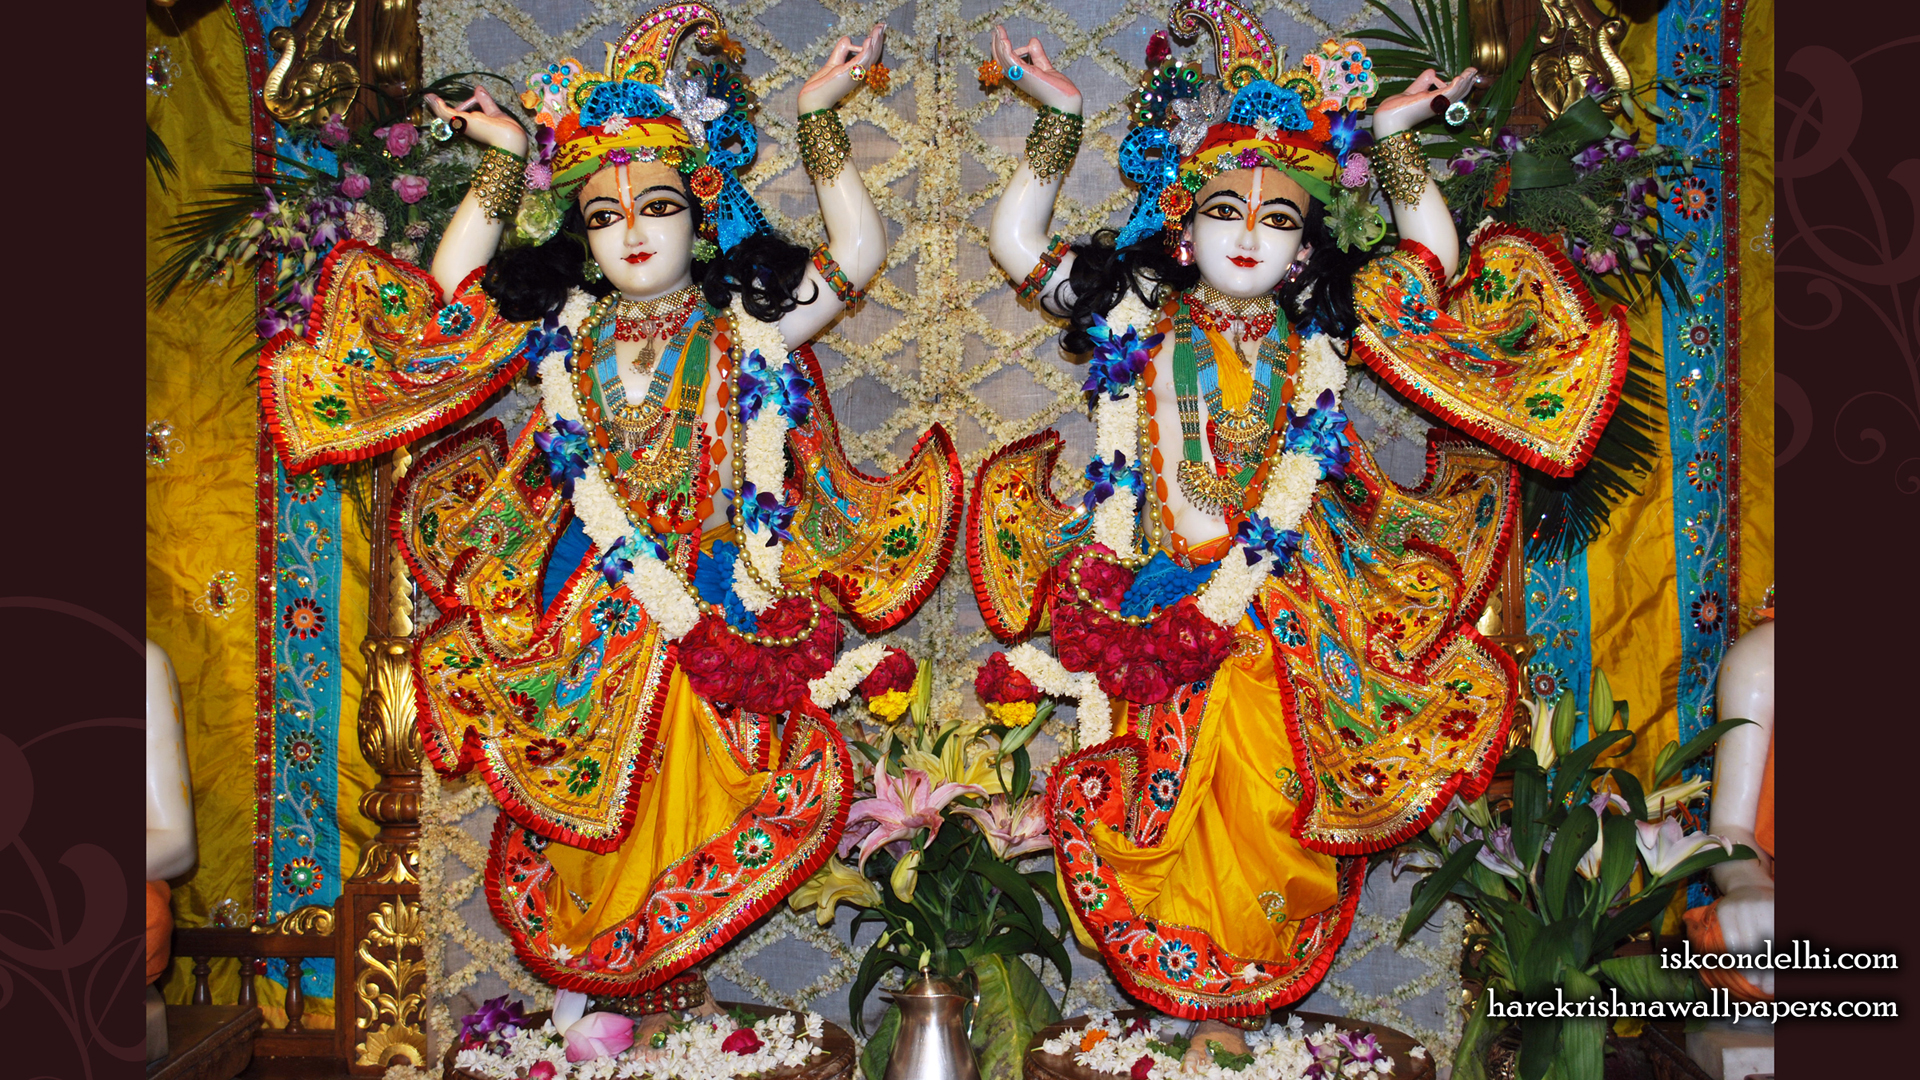 Sri Sri Gaura Nitai Wallpaper (005) Size 1920x1080 Download